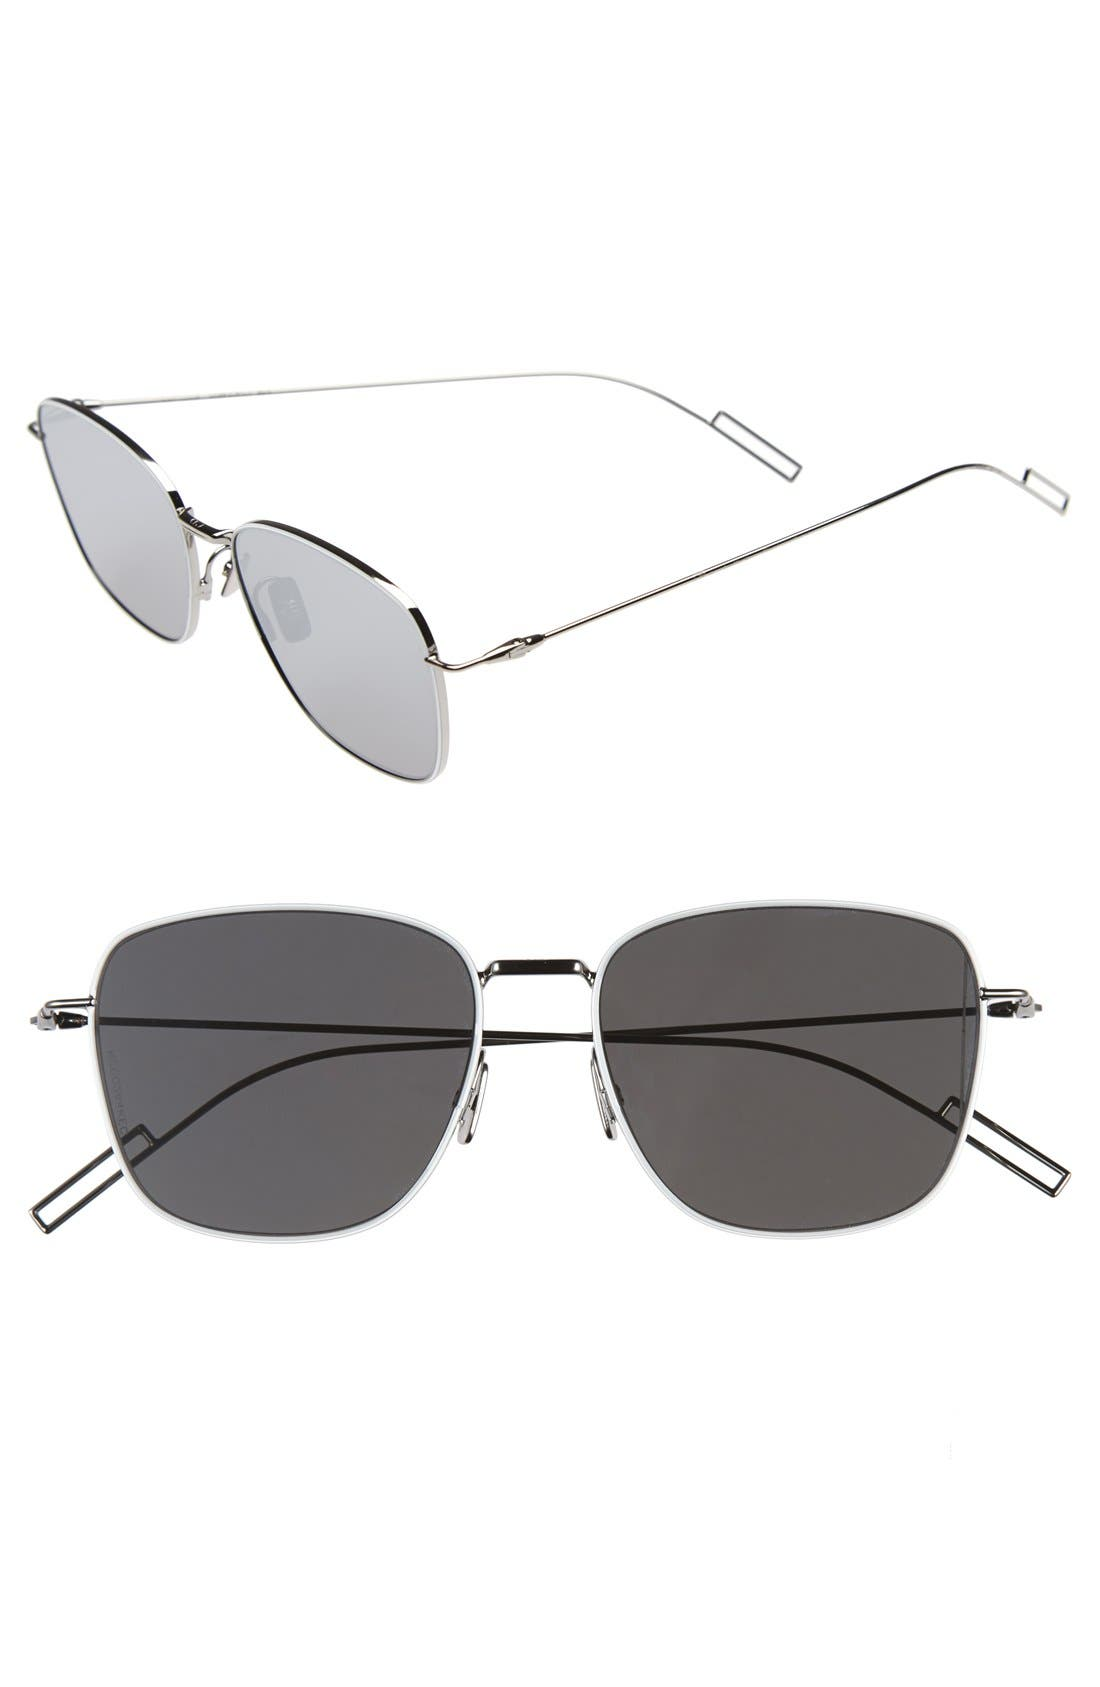 'Composit 1.1S' 54mm Metal Sunglasses,                             Main thumbnail 1, color,                             PALLADIUM/ GREY SILVER MIRROR